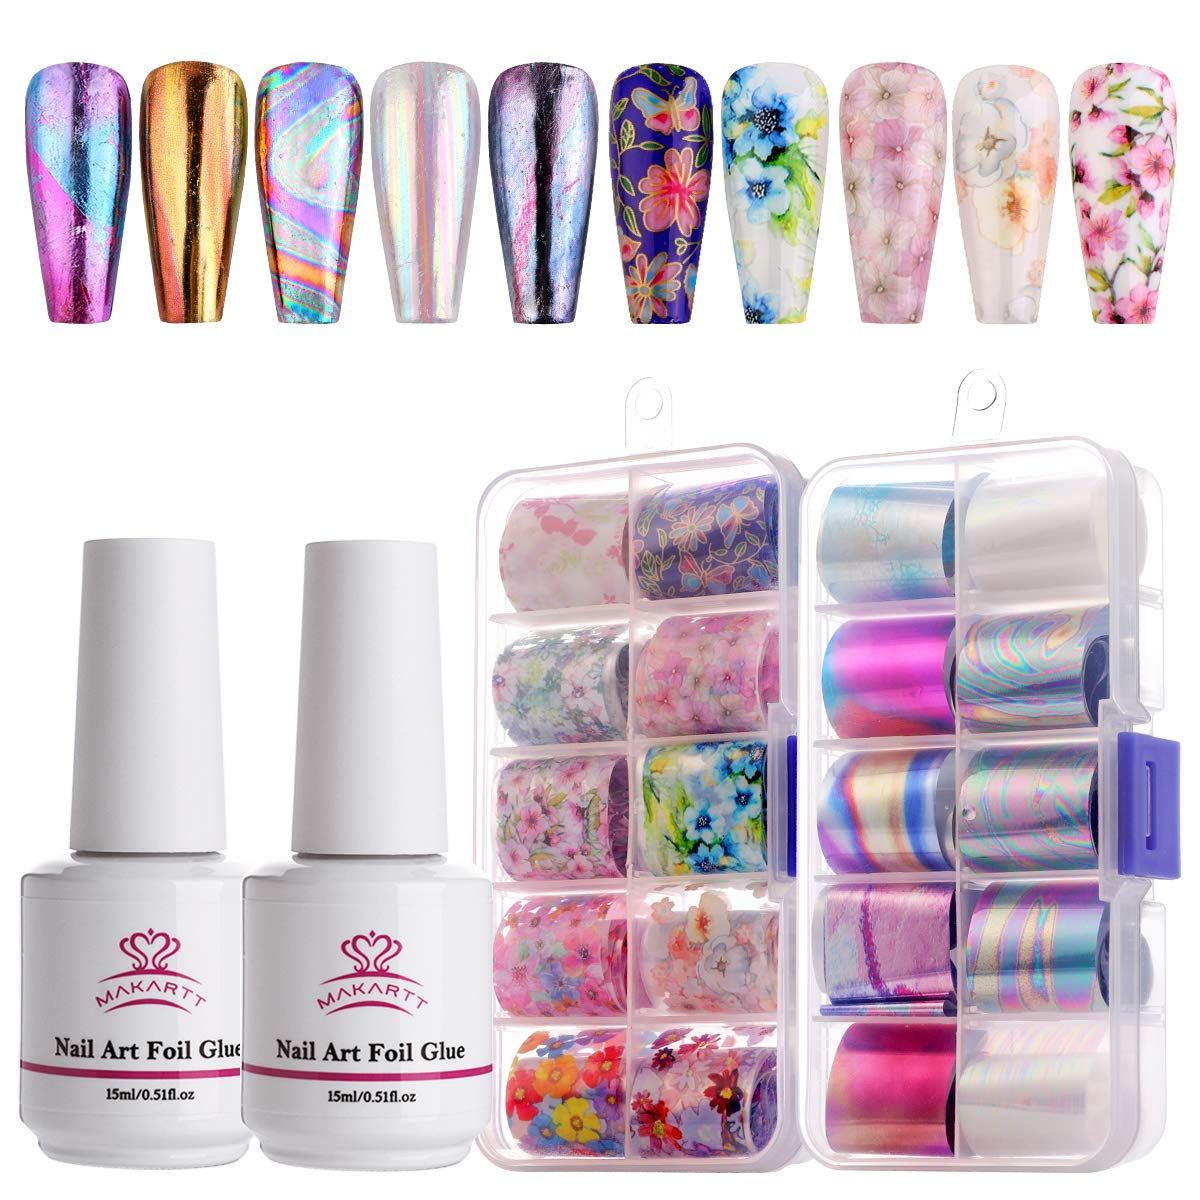 Amazon Com Makartt Nail Art Foil Glue Gel With Stickers Set Rose Flowers Metal Nail Transfer Gel Tips Manicure Art Diy 15ml 20pcs 2 5cm100cm Stickers Uv Led Lamp Required Arts Crafts Sewing